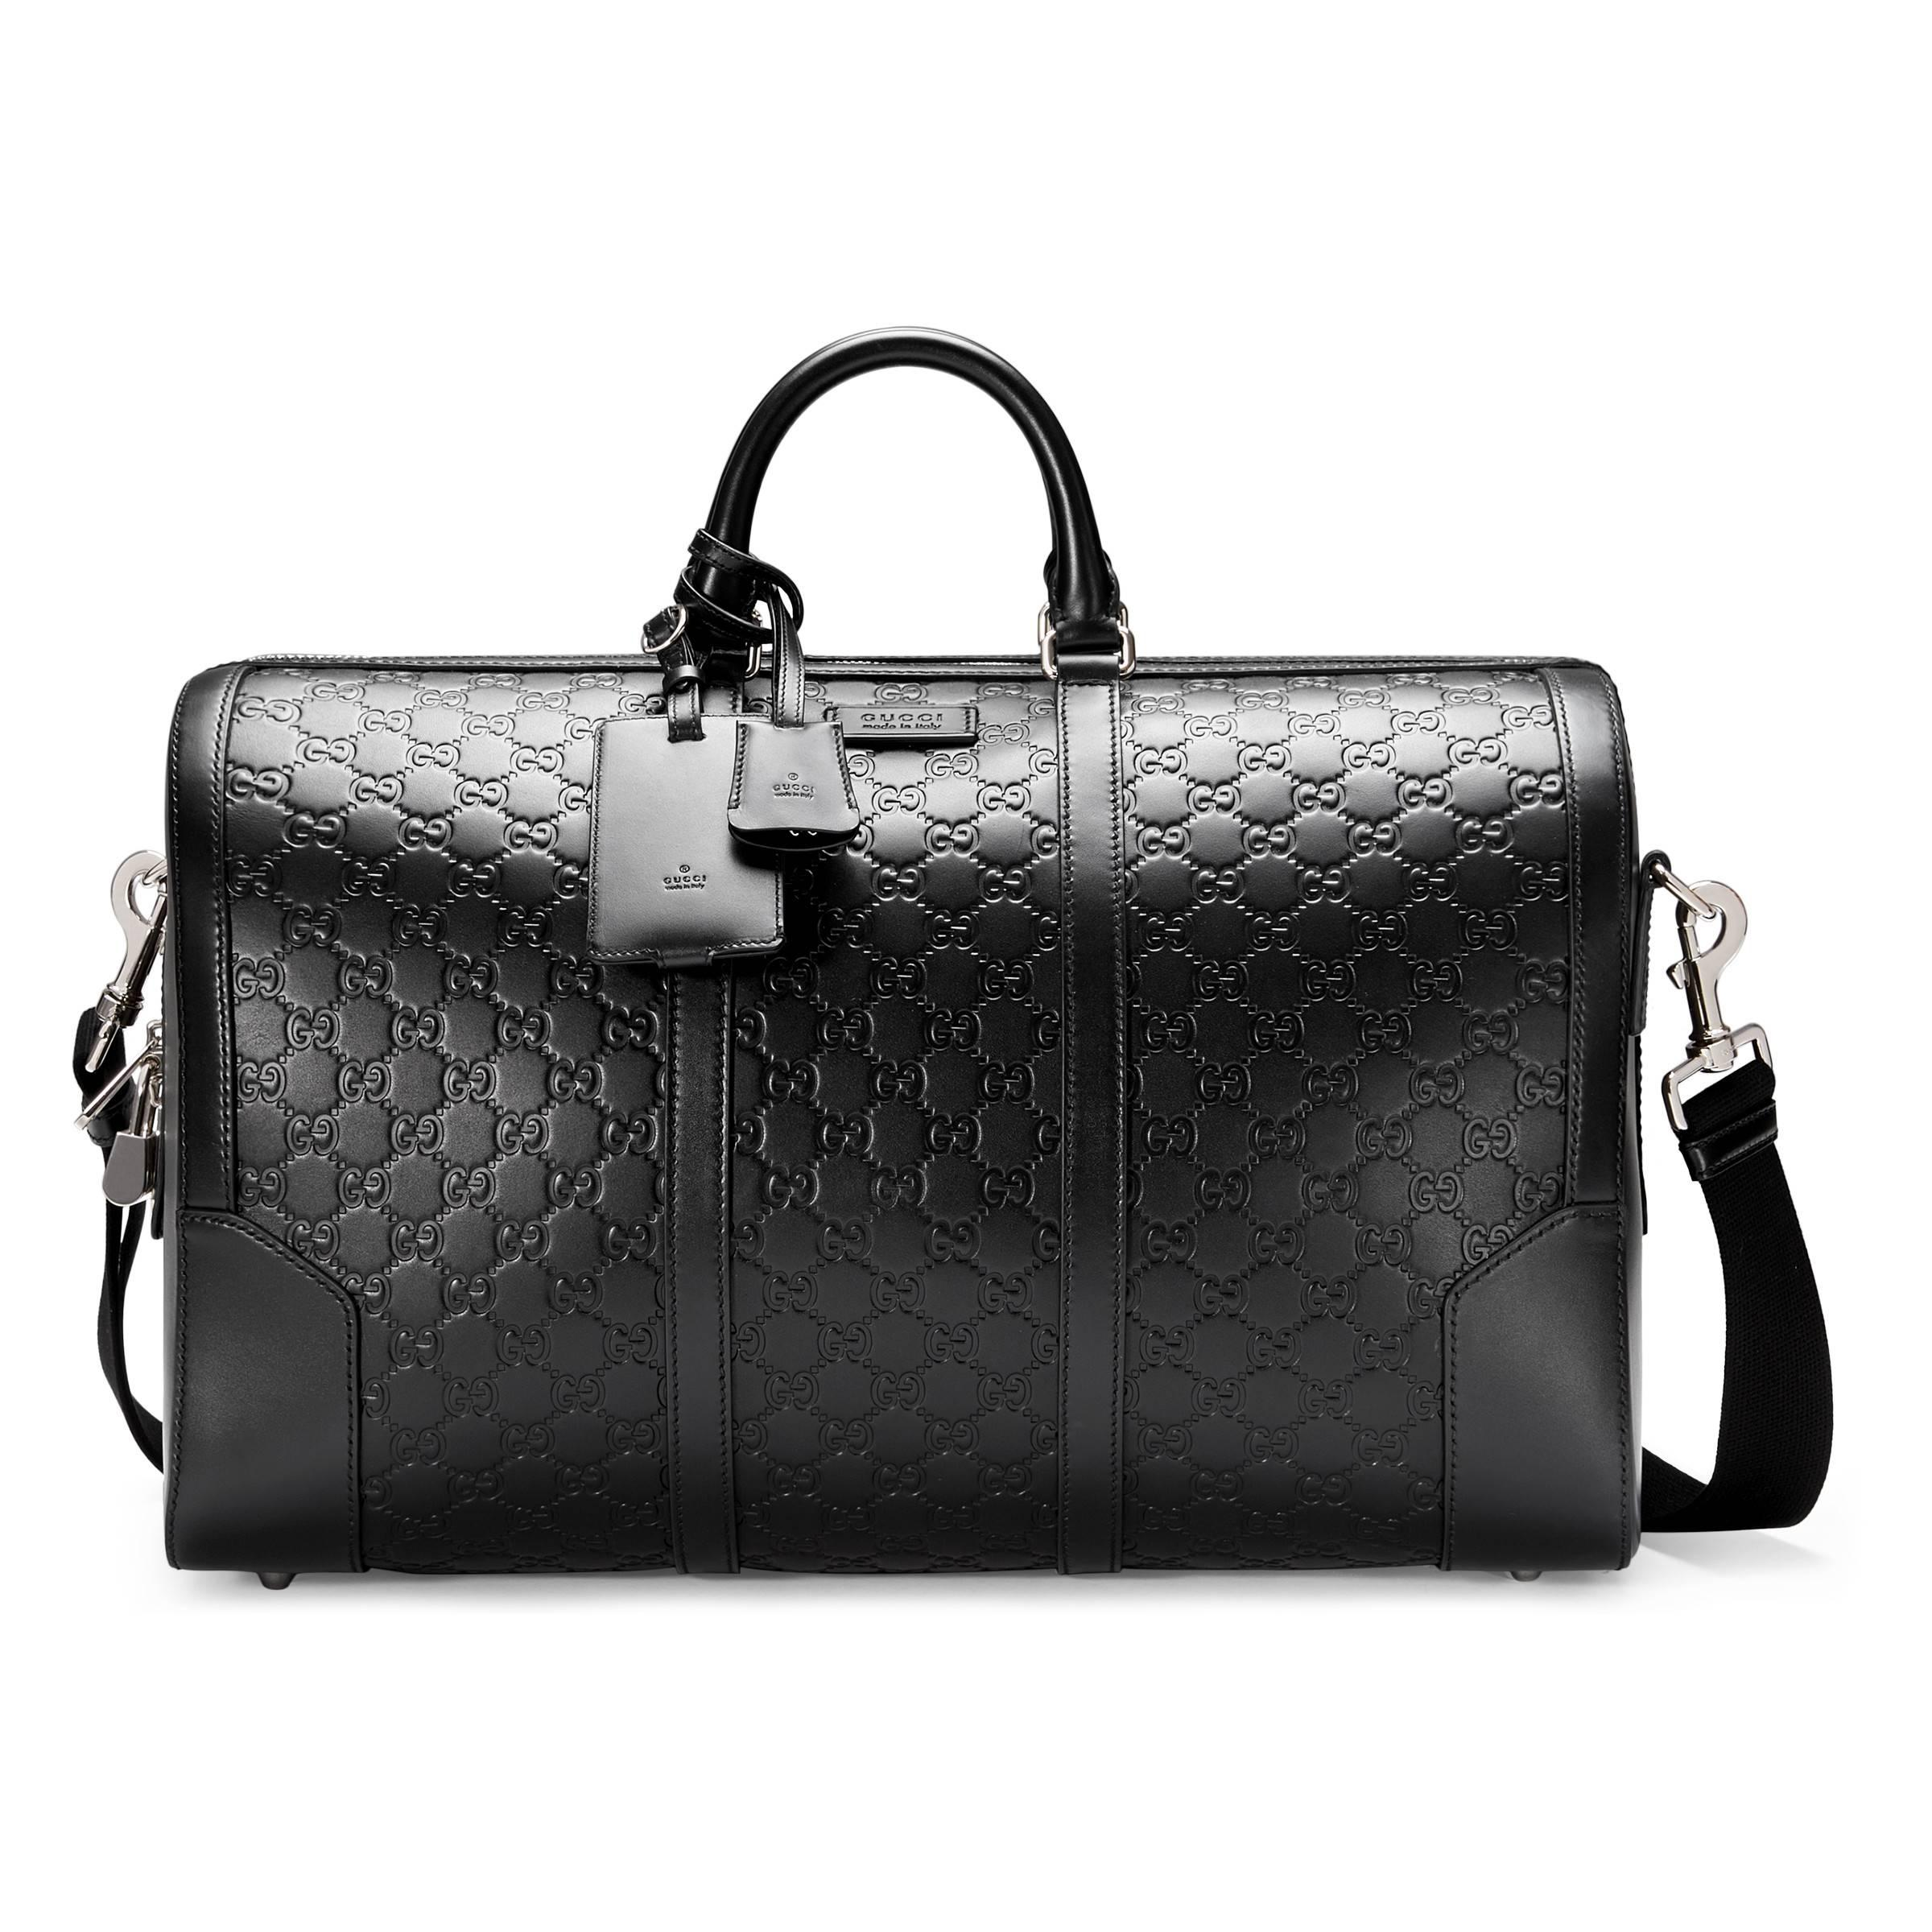 6668db4a3bf Gucci Signature Leather Duffle in Black for Men - Save 26% - Lyst